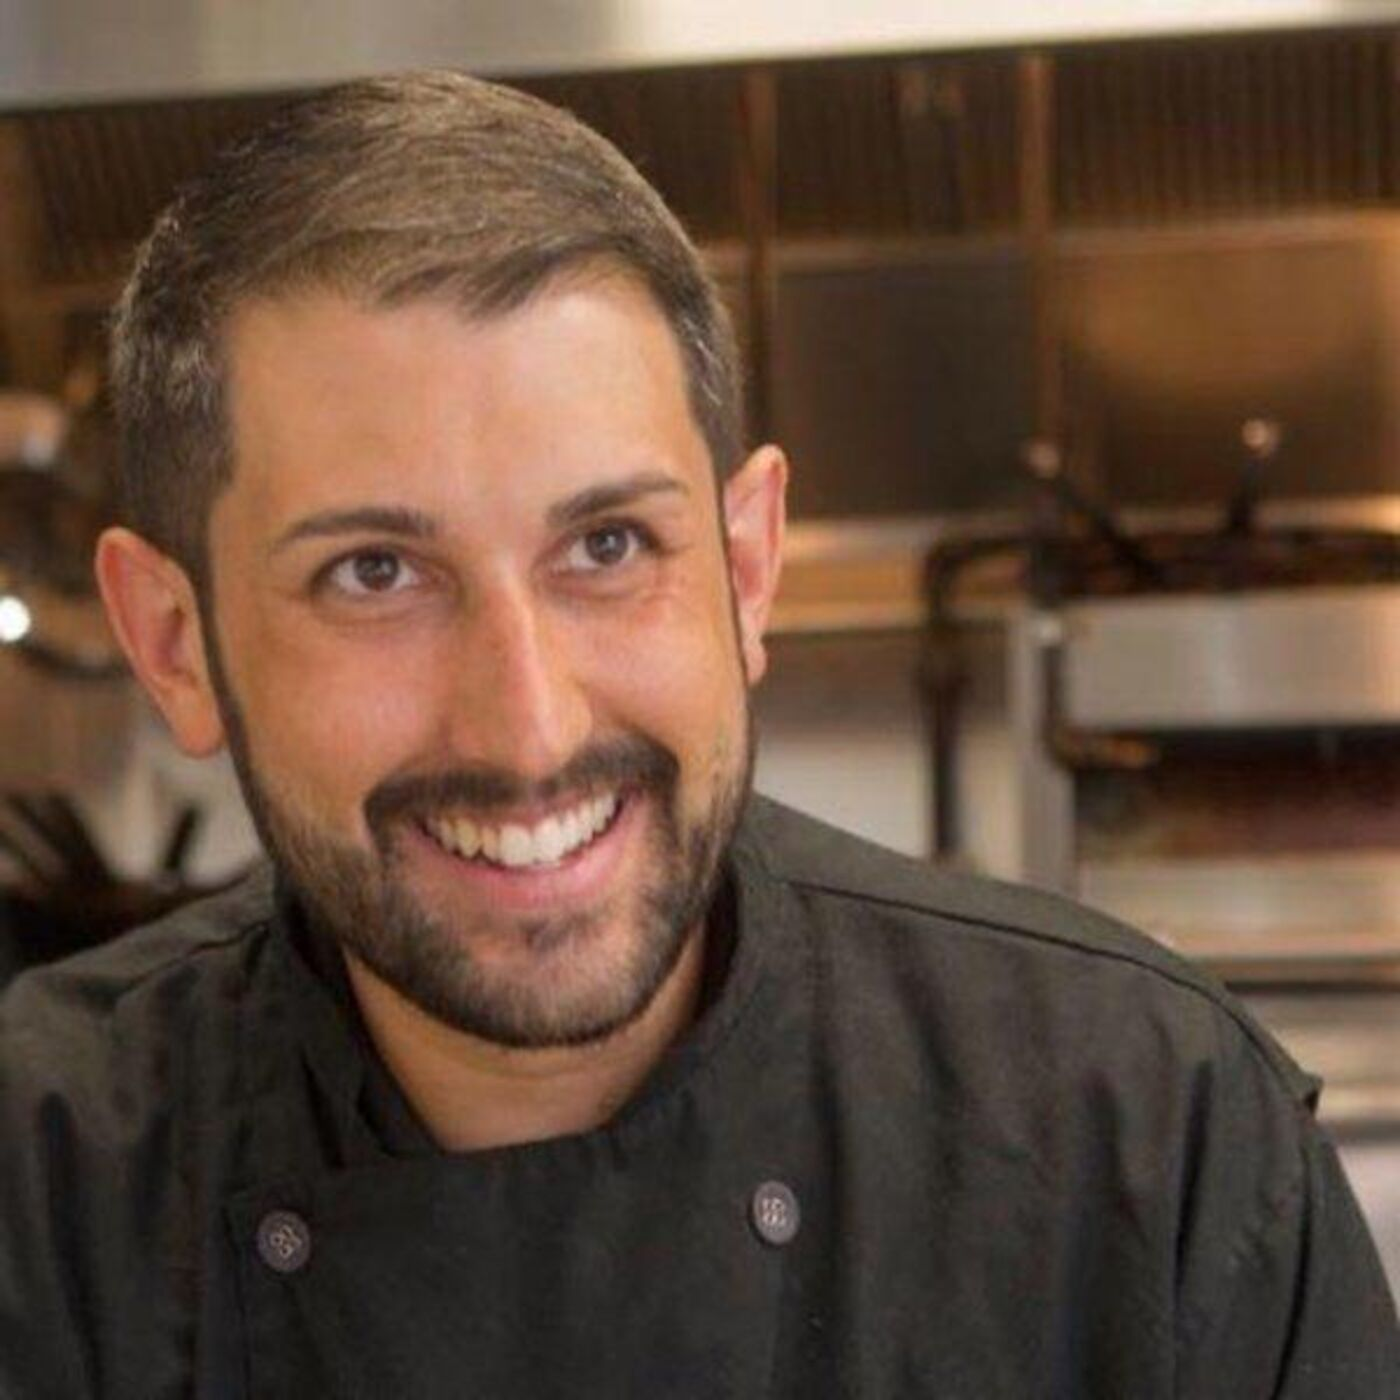 Episode 62 with Chef Nick Peters Bond Part 2 - Hell's Kitchen Alum, Kitchen to Aisle Catering